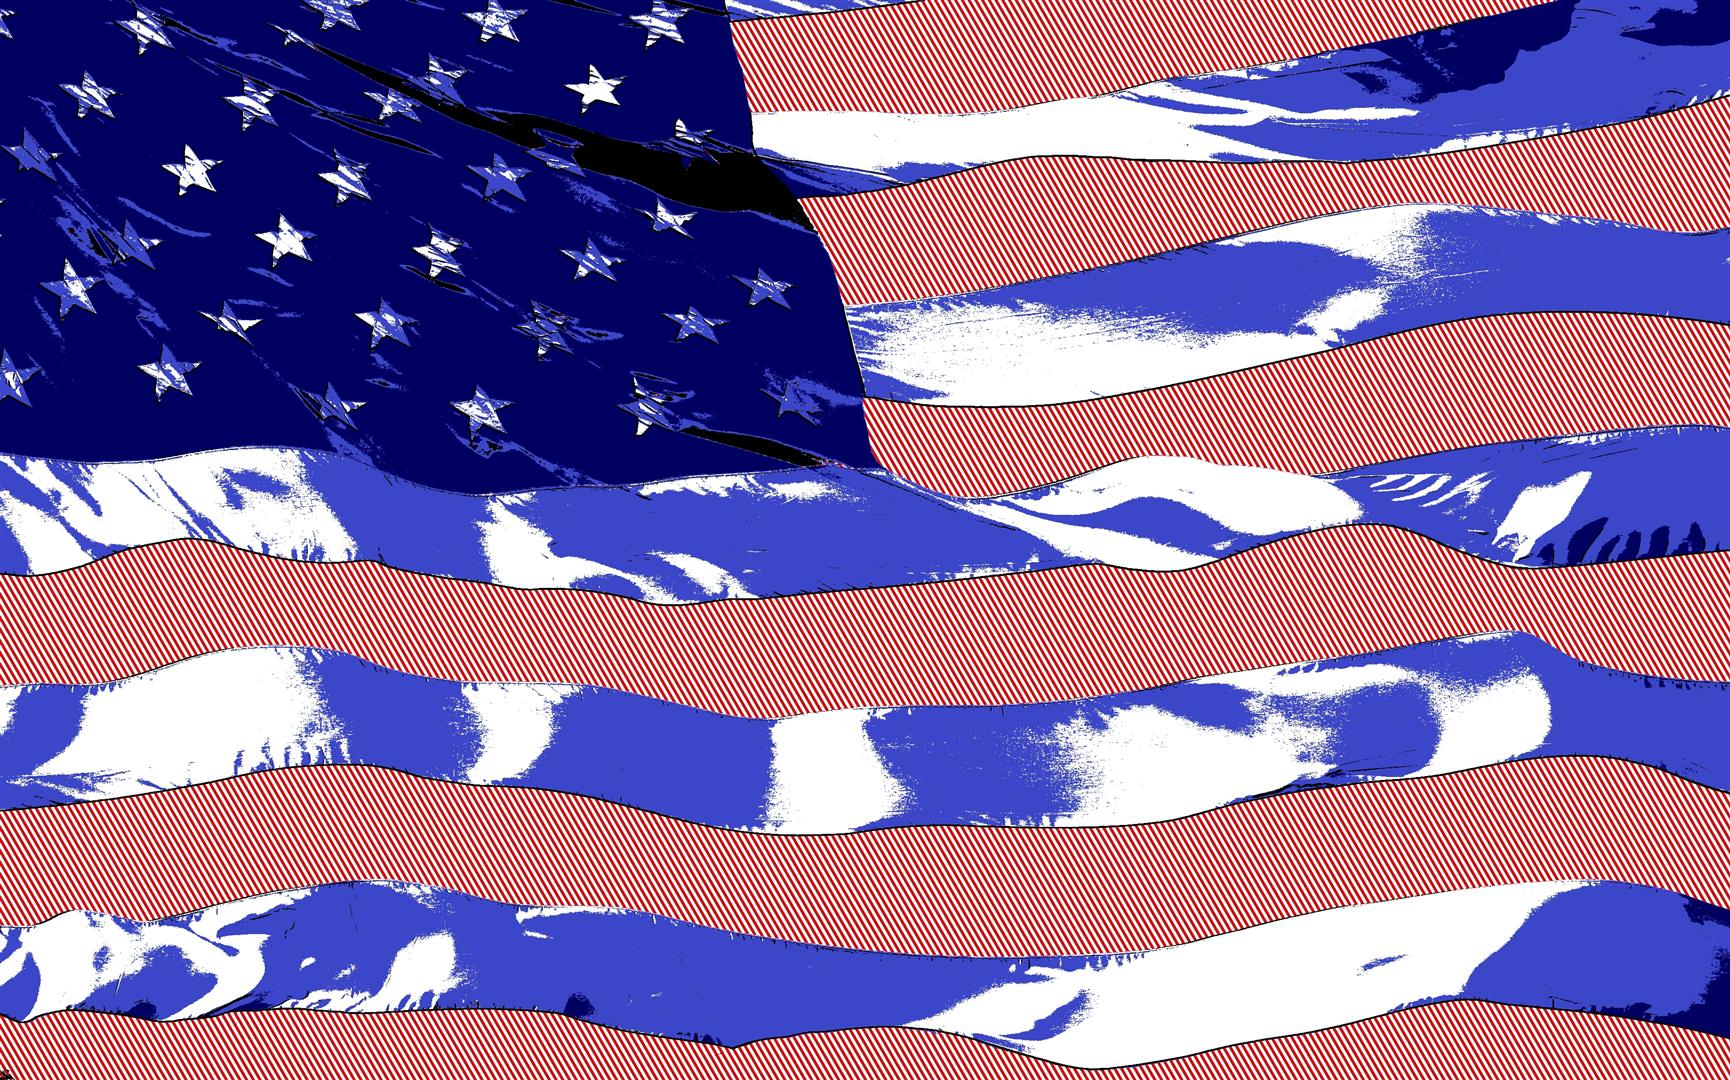 US Flag Blowing in the Wind Lichenstein ver 7 (Large).jpg